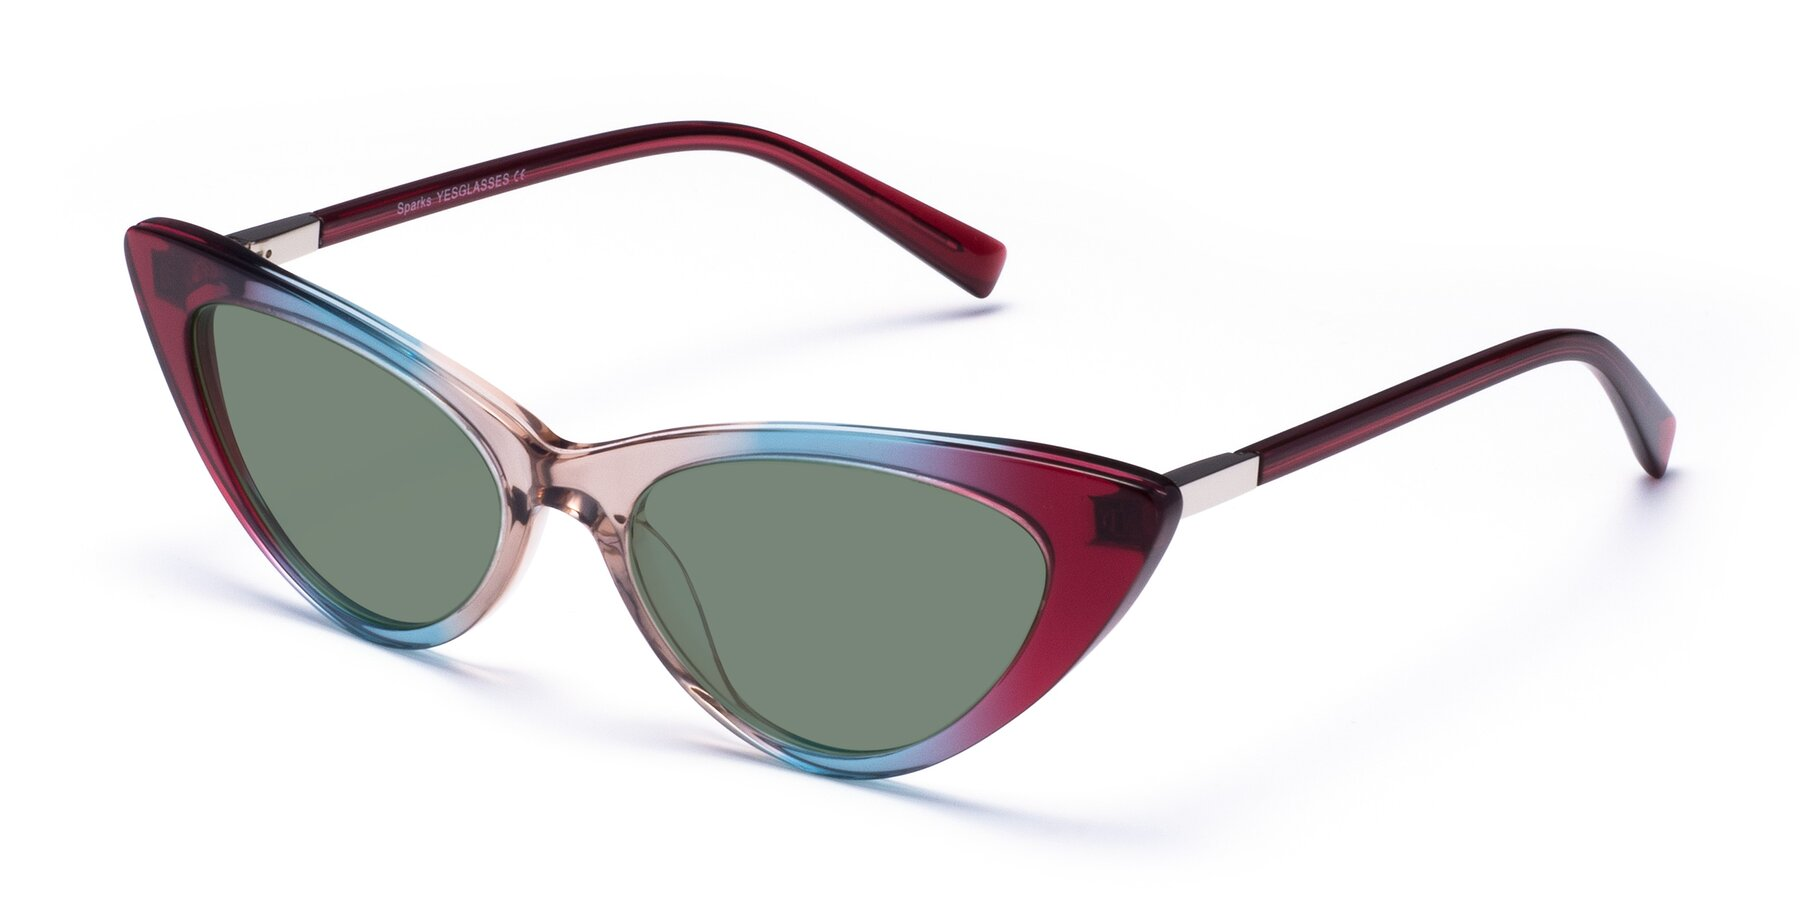 Angle of Sparks in Transparent Gradient Purple with Medium Green Tinted Lenses